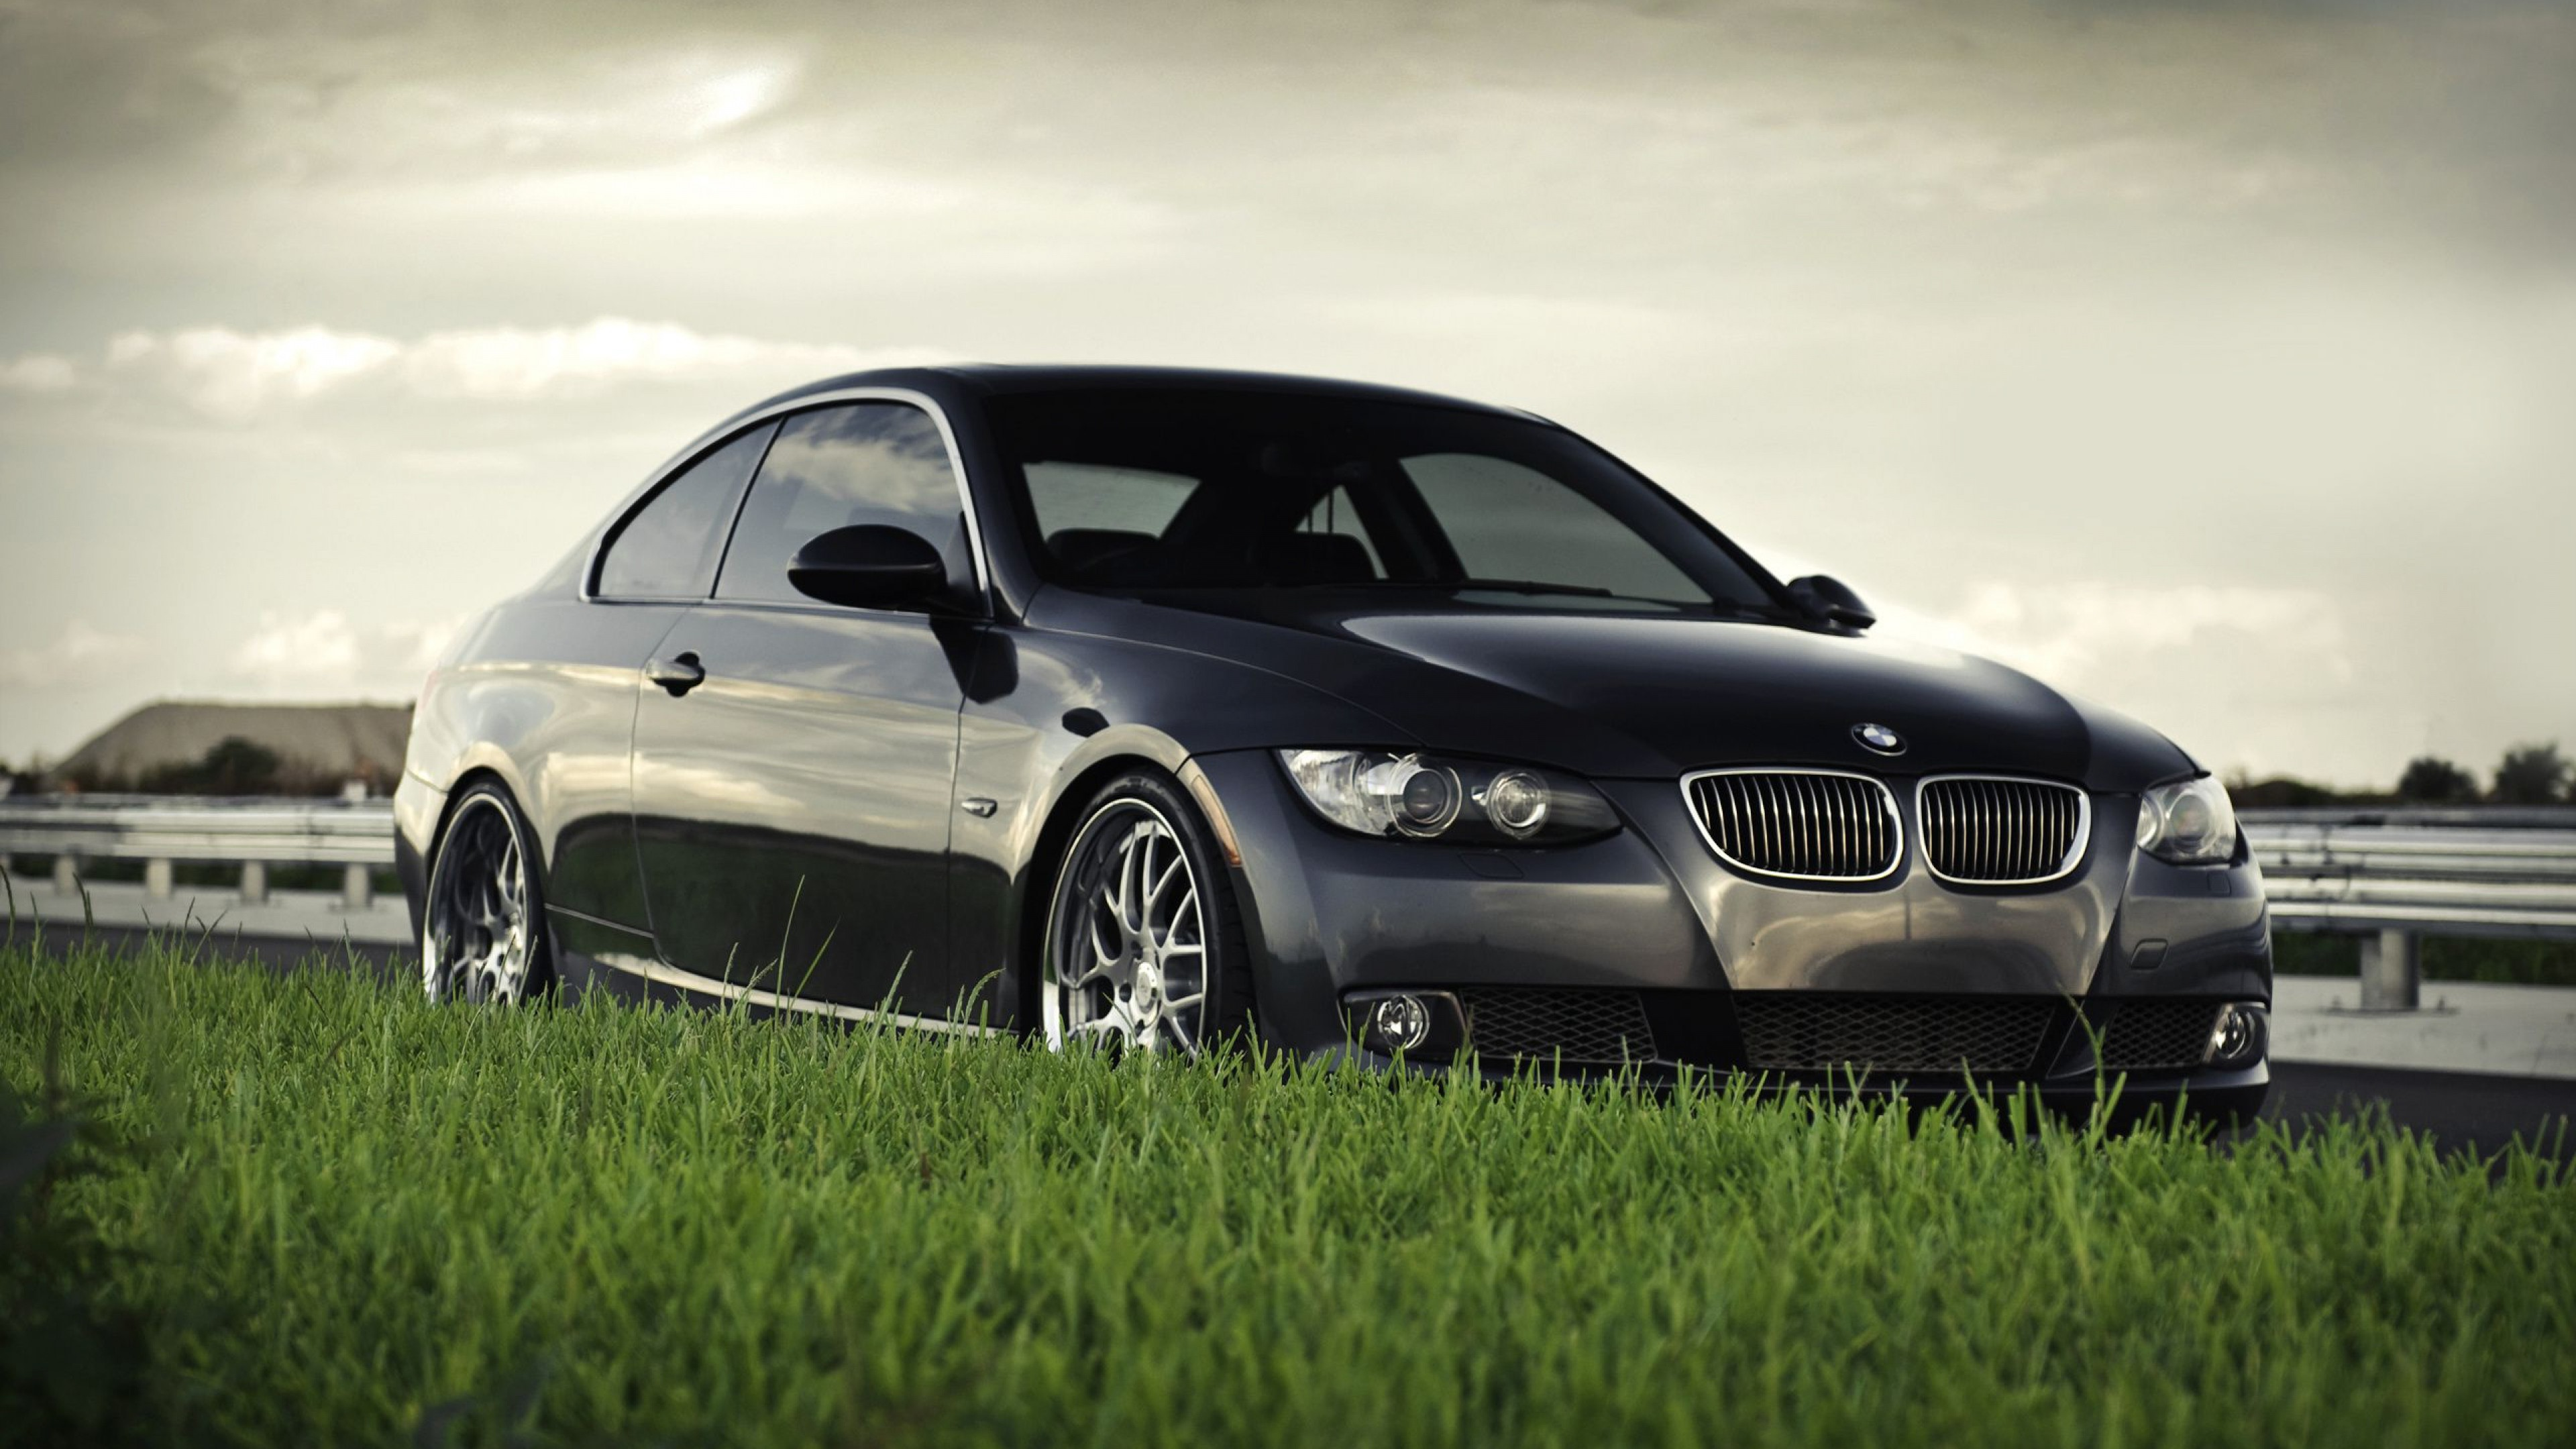 Bmw 3 Series Coupe, HD Cars, 4k Wallpapers, Images ...